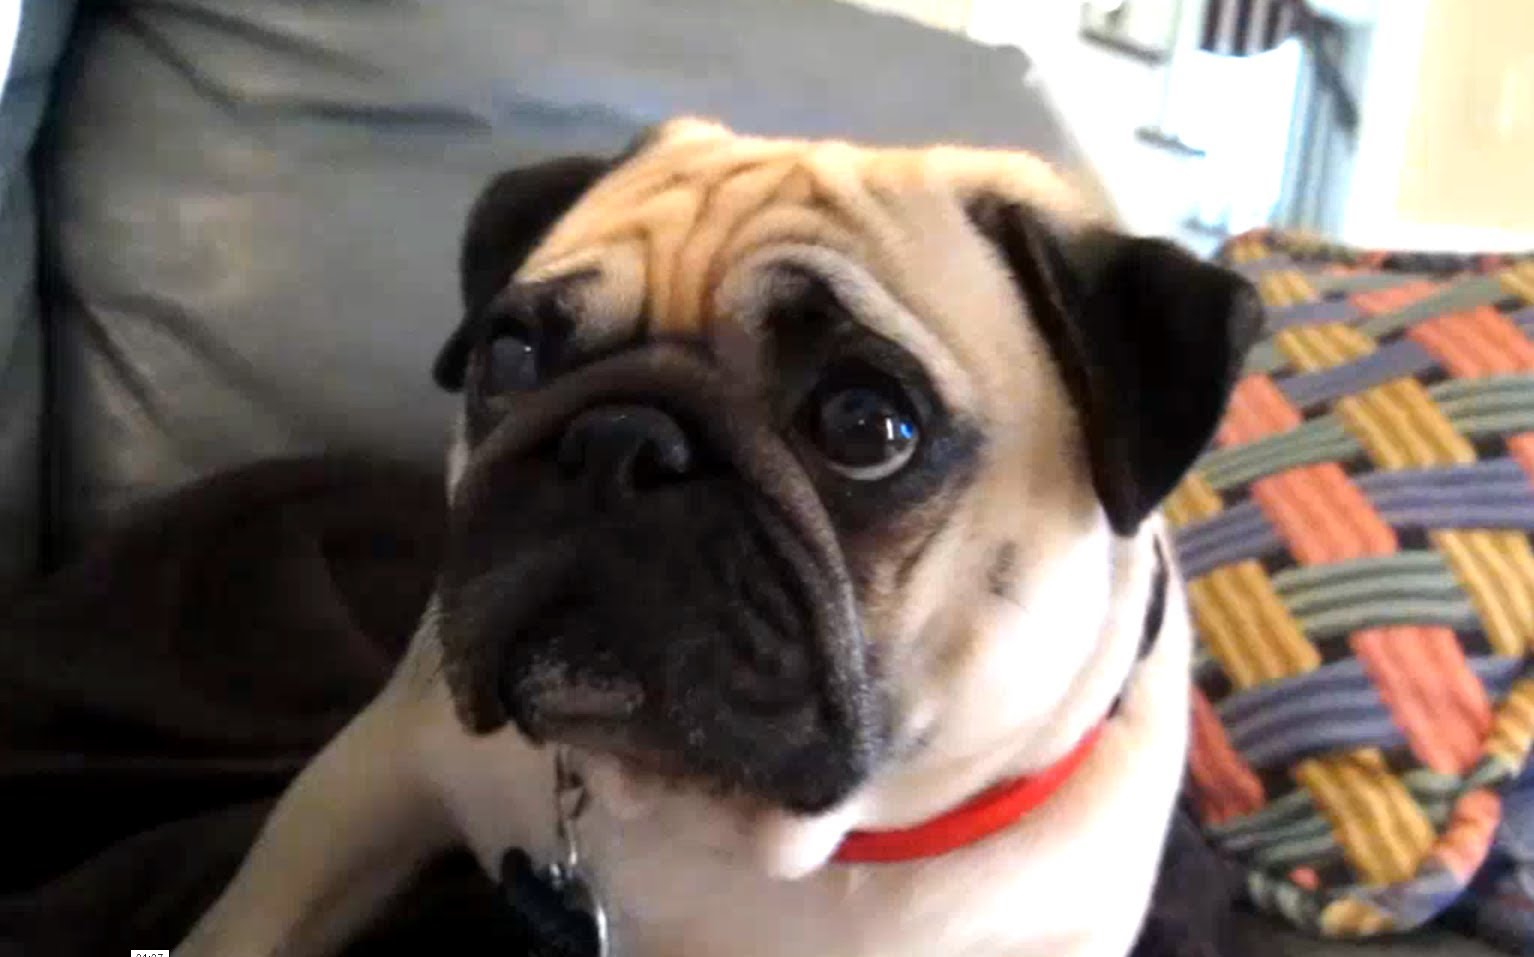 Pug gets scolded takes it hard